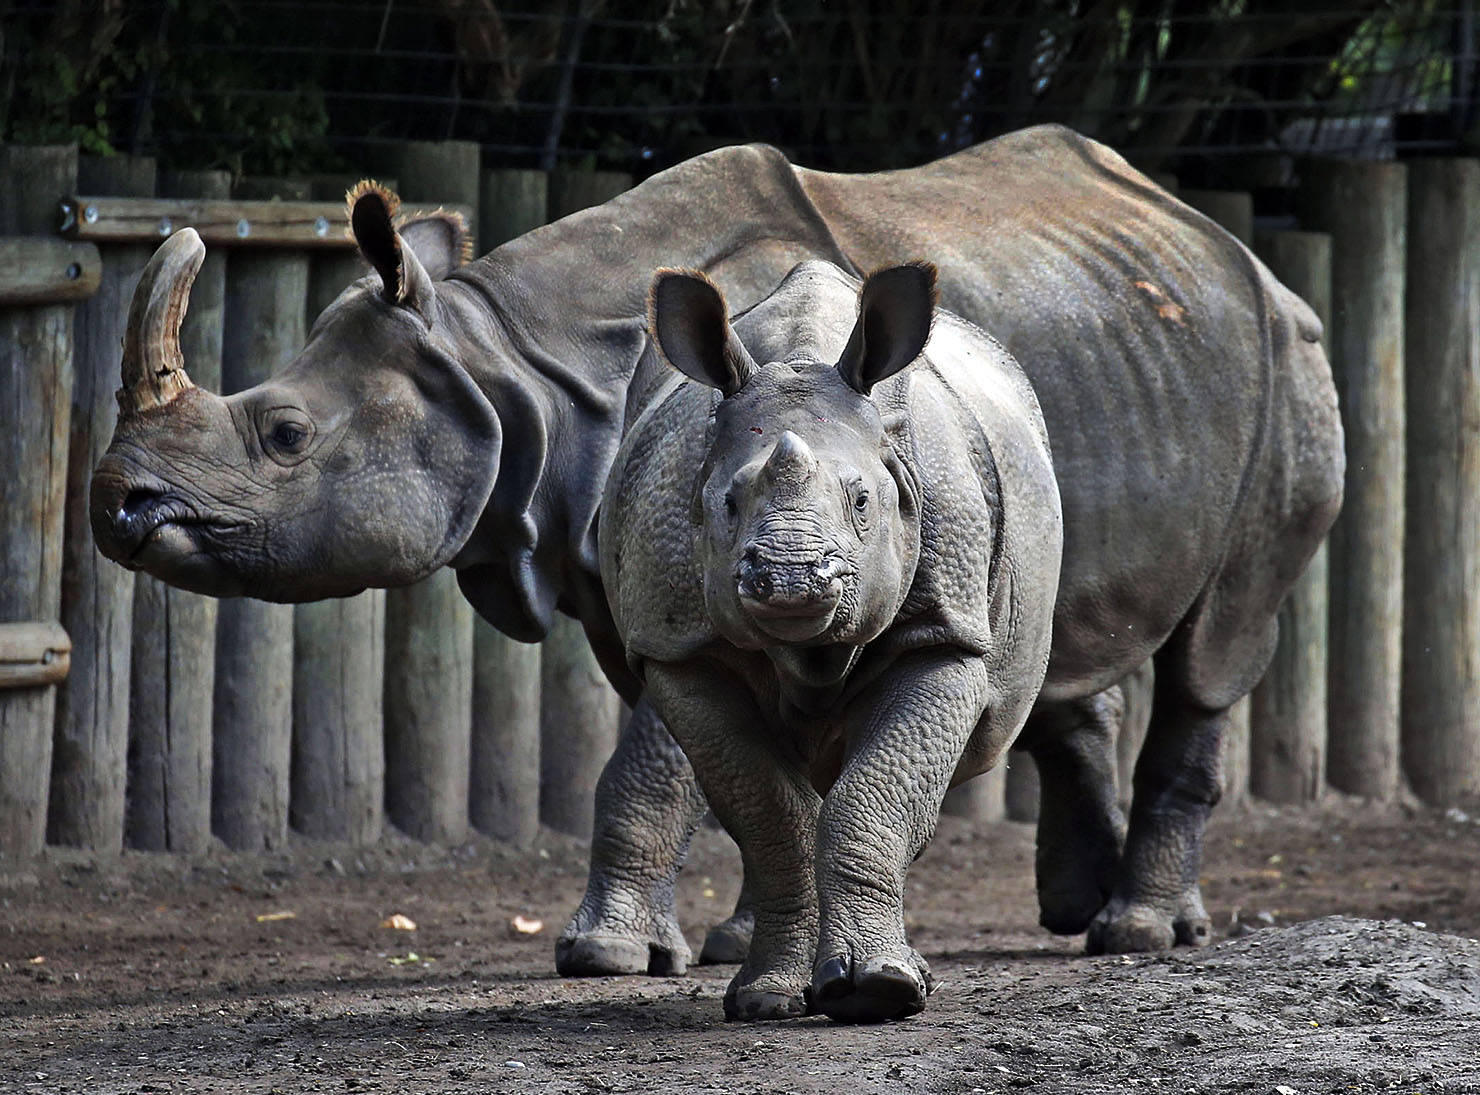 This is Monica, looking straight on in front, with her mom Tashi. Monica was born at the Buffalo Zoo to mother Tashi on June 5, 2014. At the time Monica was considered a miracle of science, the result of artificial insemination (AI.) She was the first offspring for a male rhino who never contributed to the genetics of the Indian rhino population during his lifetime. Monica's father, Jimmy, died at the Cincinnati Zoo in 2004, nearly a full decade before the AI procedure took place, using his frozen DNA. Monica is currently the only surviving Indian rhino from AI.Monica will be moving to the San Diego Zoo Safari Park which houses the largest Indian rhinos group in captivity.  This was on  Thursday, Oct. 13, 2016.  (Robert Kirkham/Buffalo News)